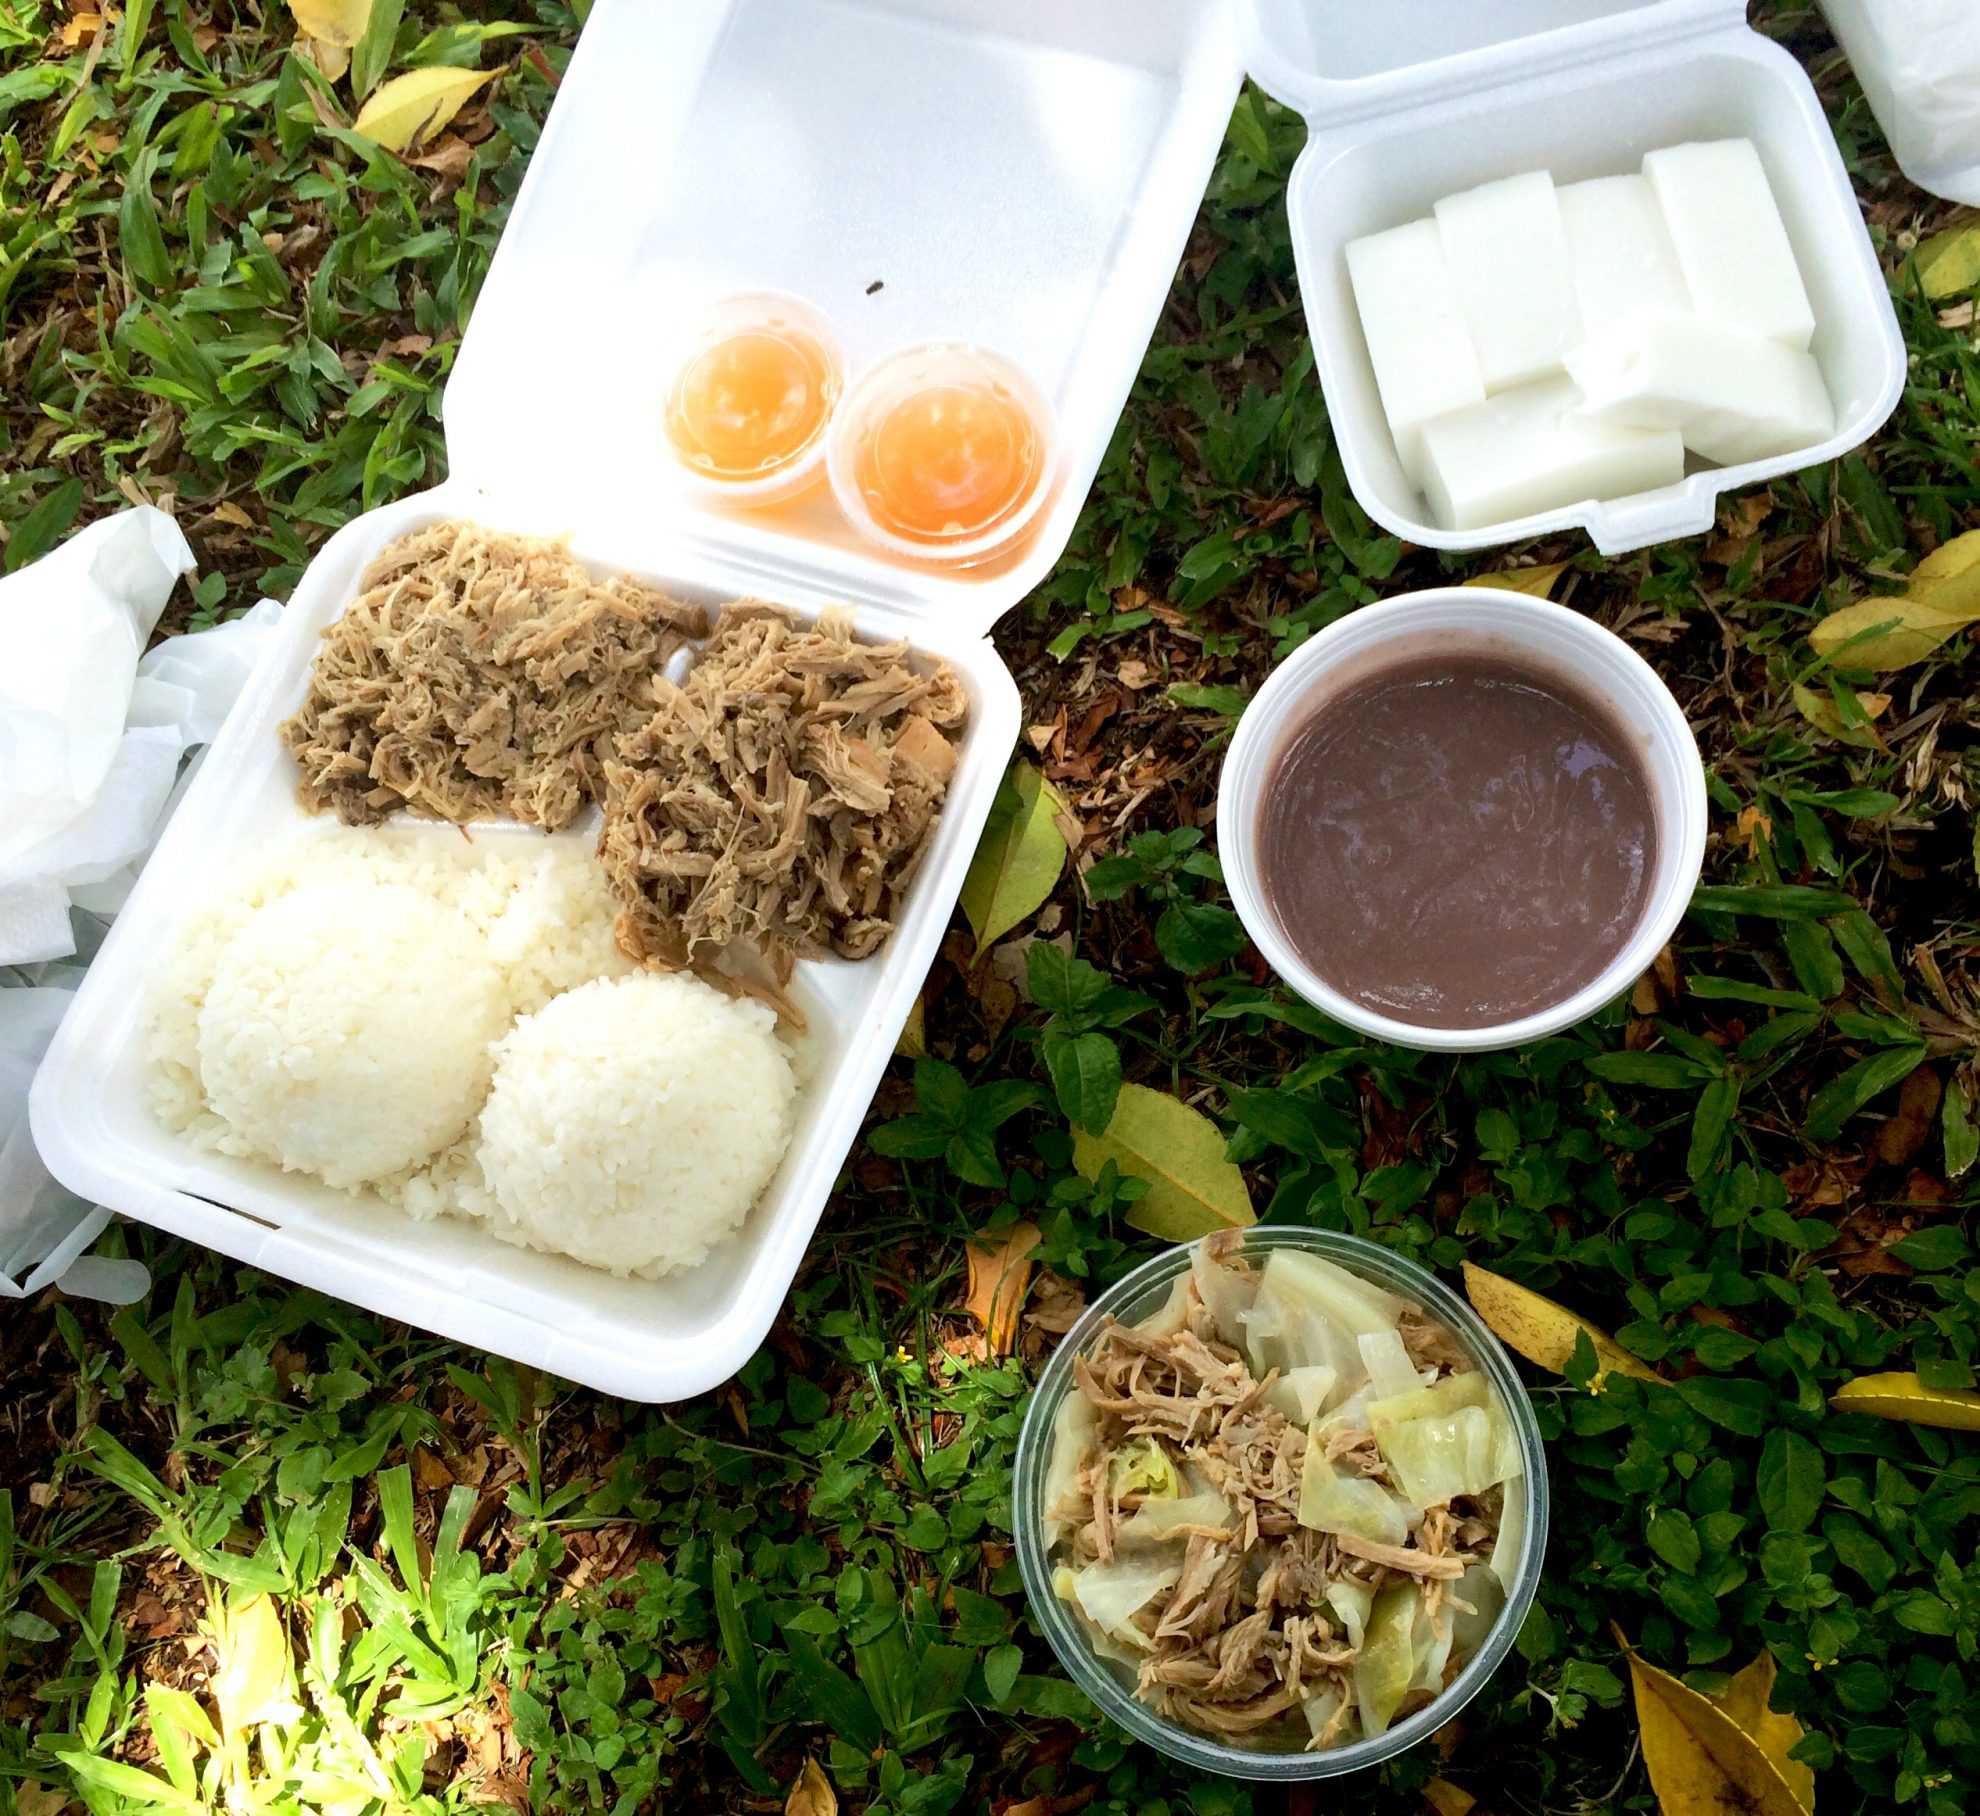 Helena's has Authentic Hawaiian Food in Waikiki, such as kalua pork, poi, and haupia